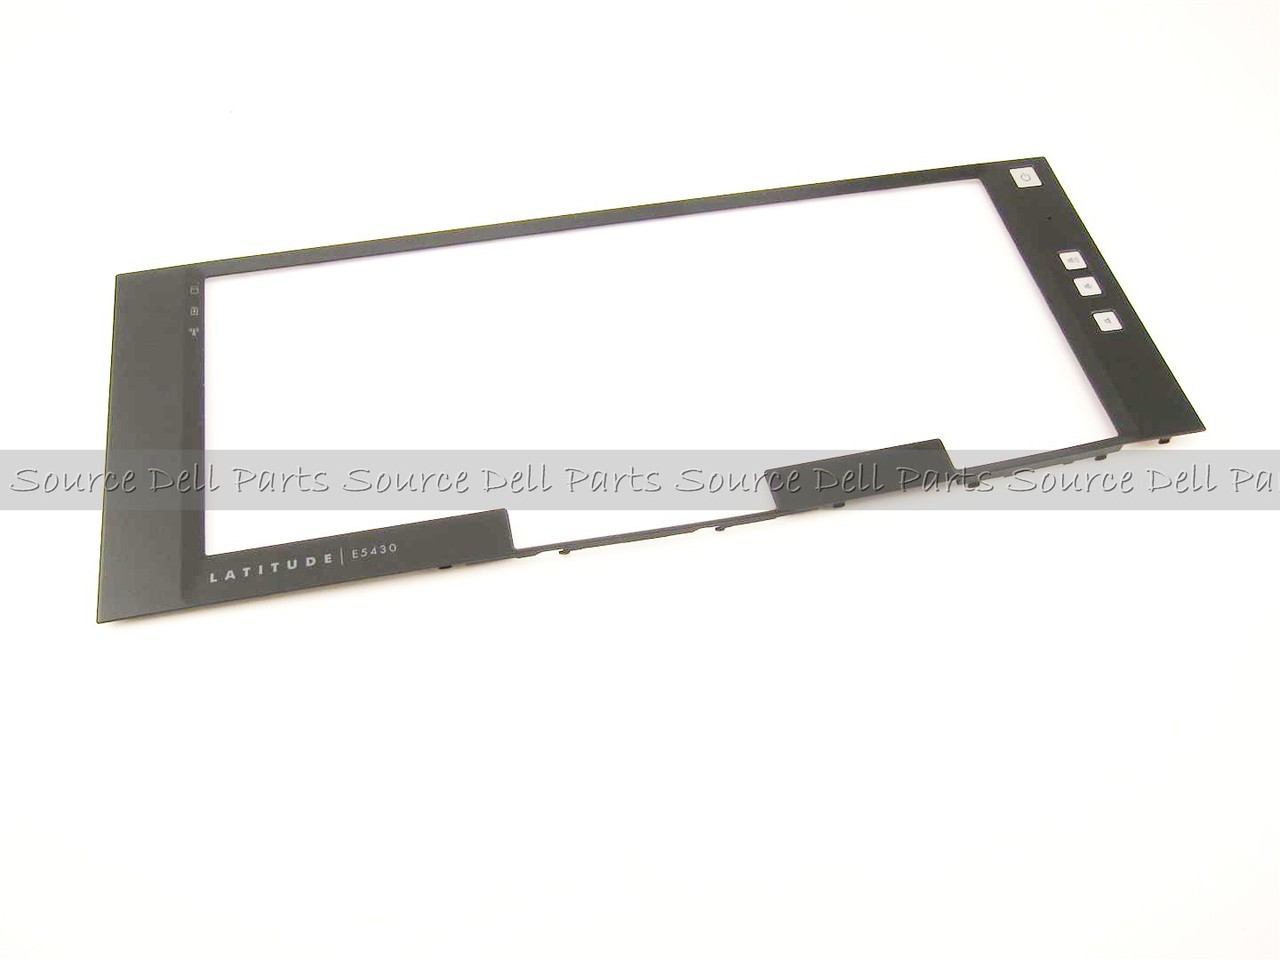 Dell Latitude E5430 Dual Pointing Keyboard Bezel Trim  - 9VC44